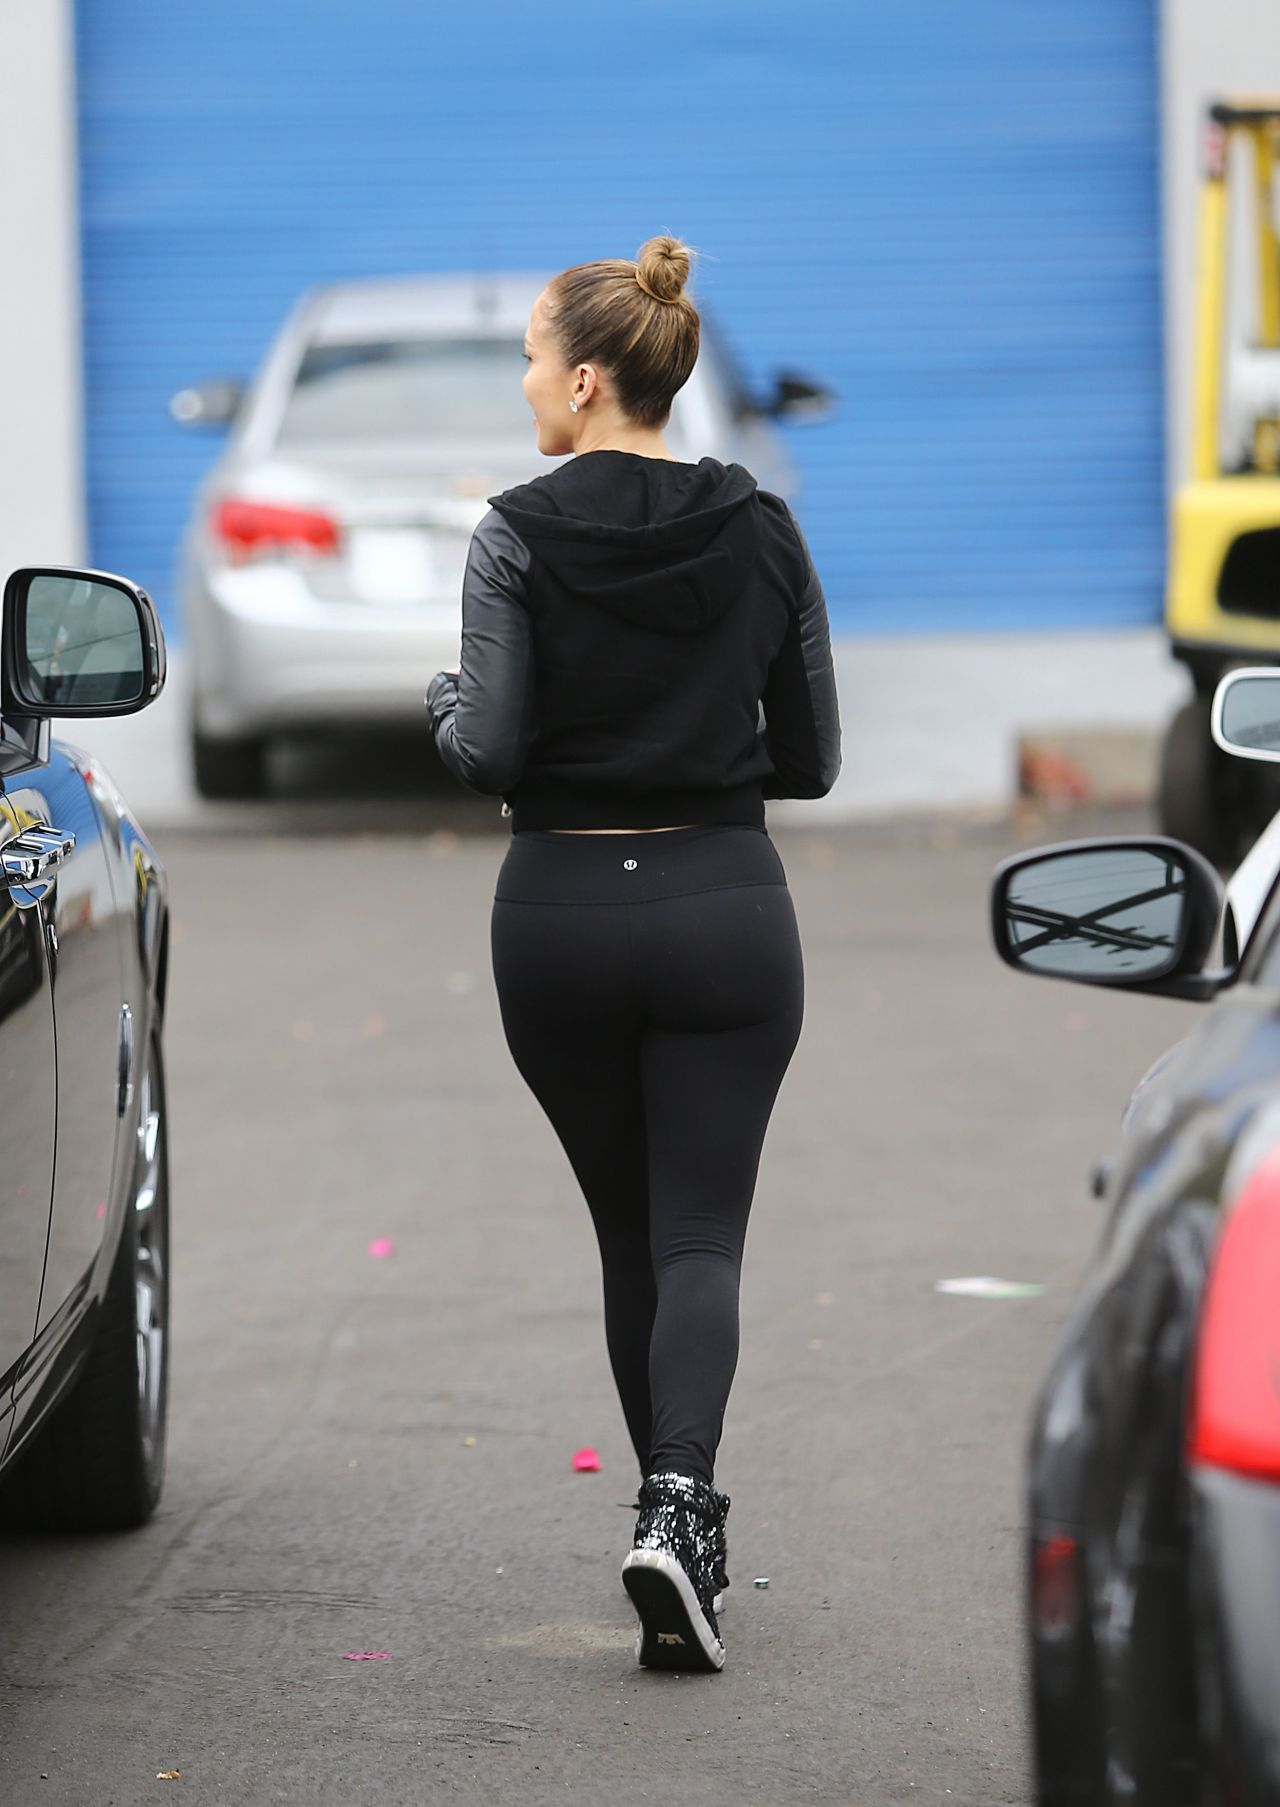 jennifer lopez big booty - Google Search | JLO | Pinterest ...